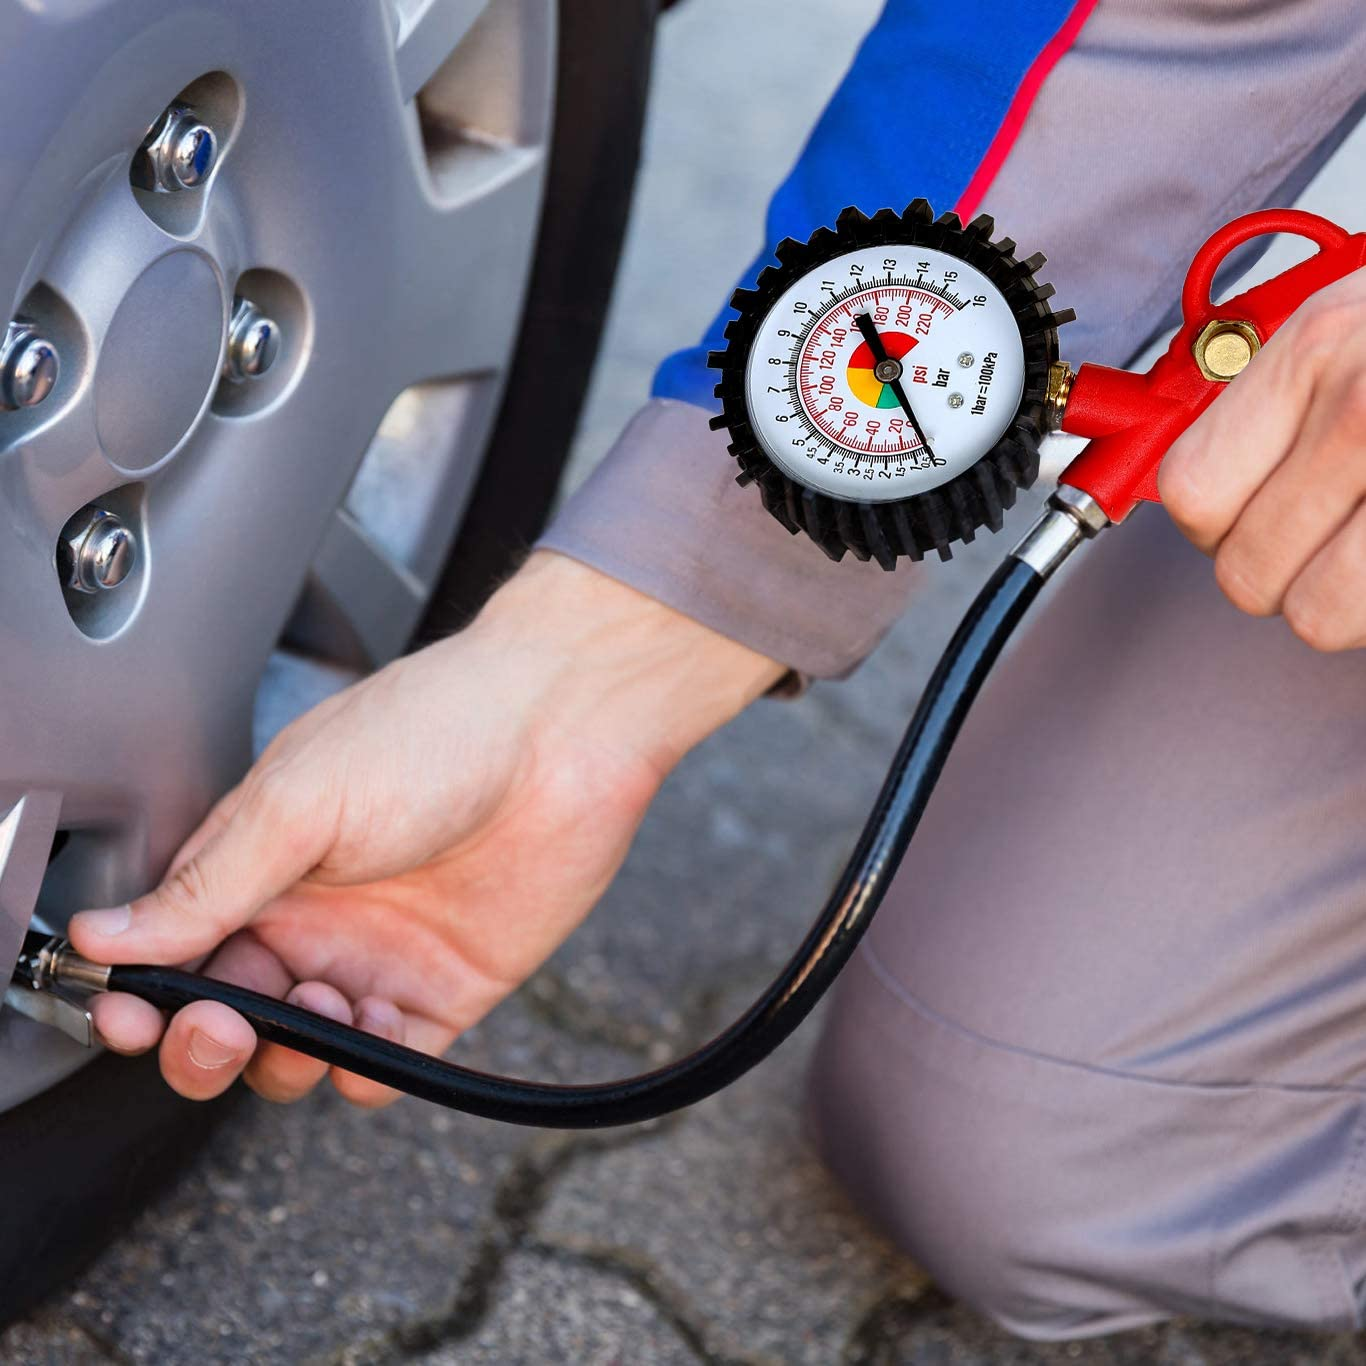 Heavy Duty 230 PSI Luft Tire Inflator with Pressure Gauge and Extension Hose with Air Chuck